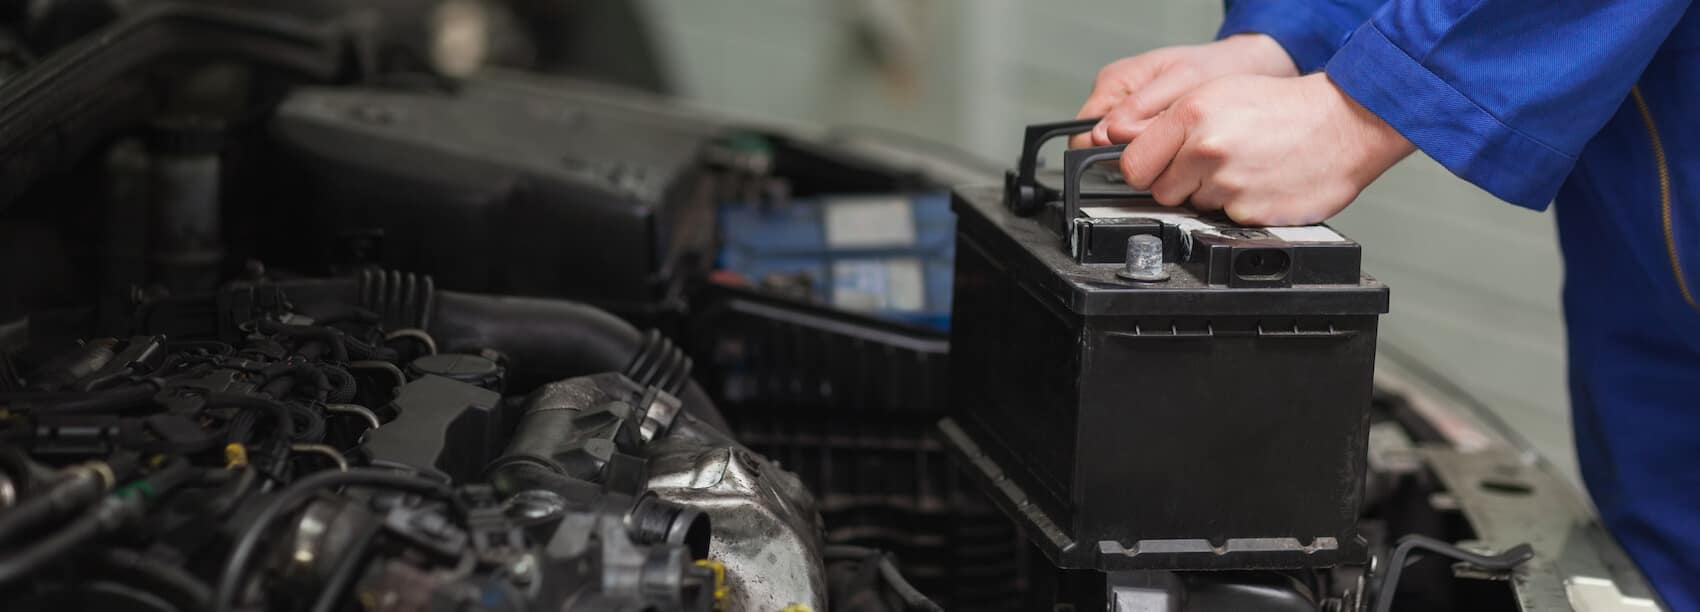 Replacing the car battery